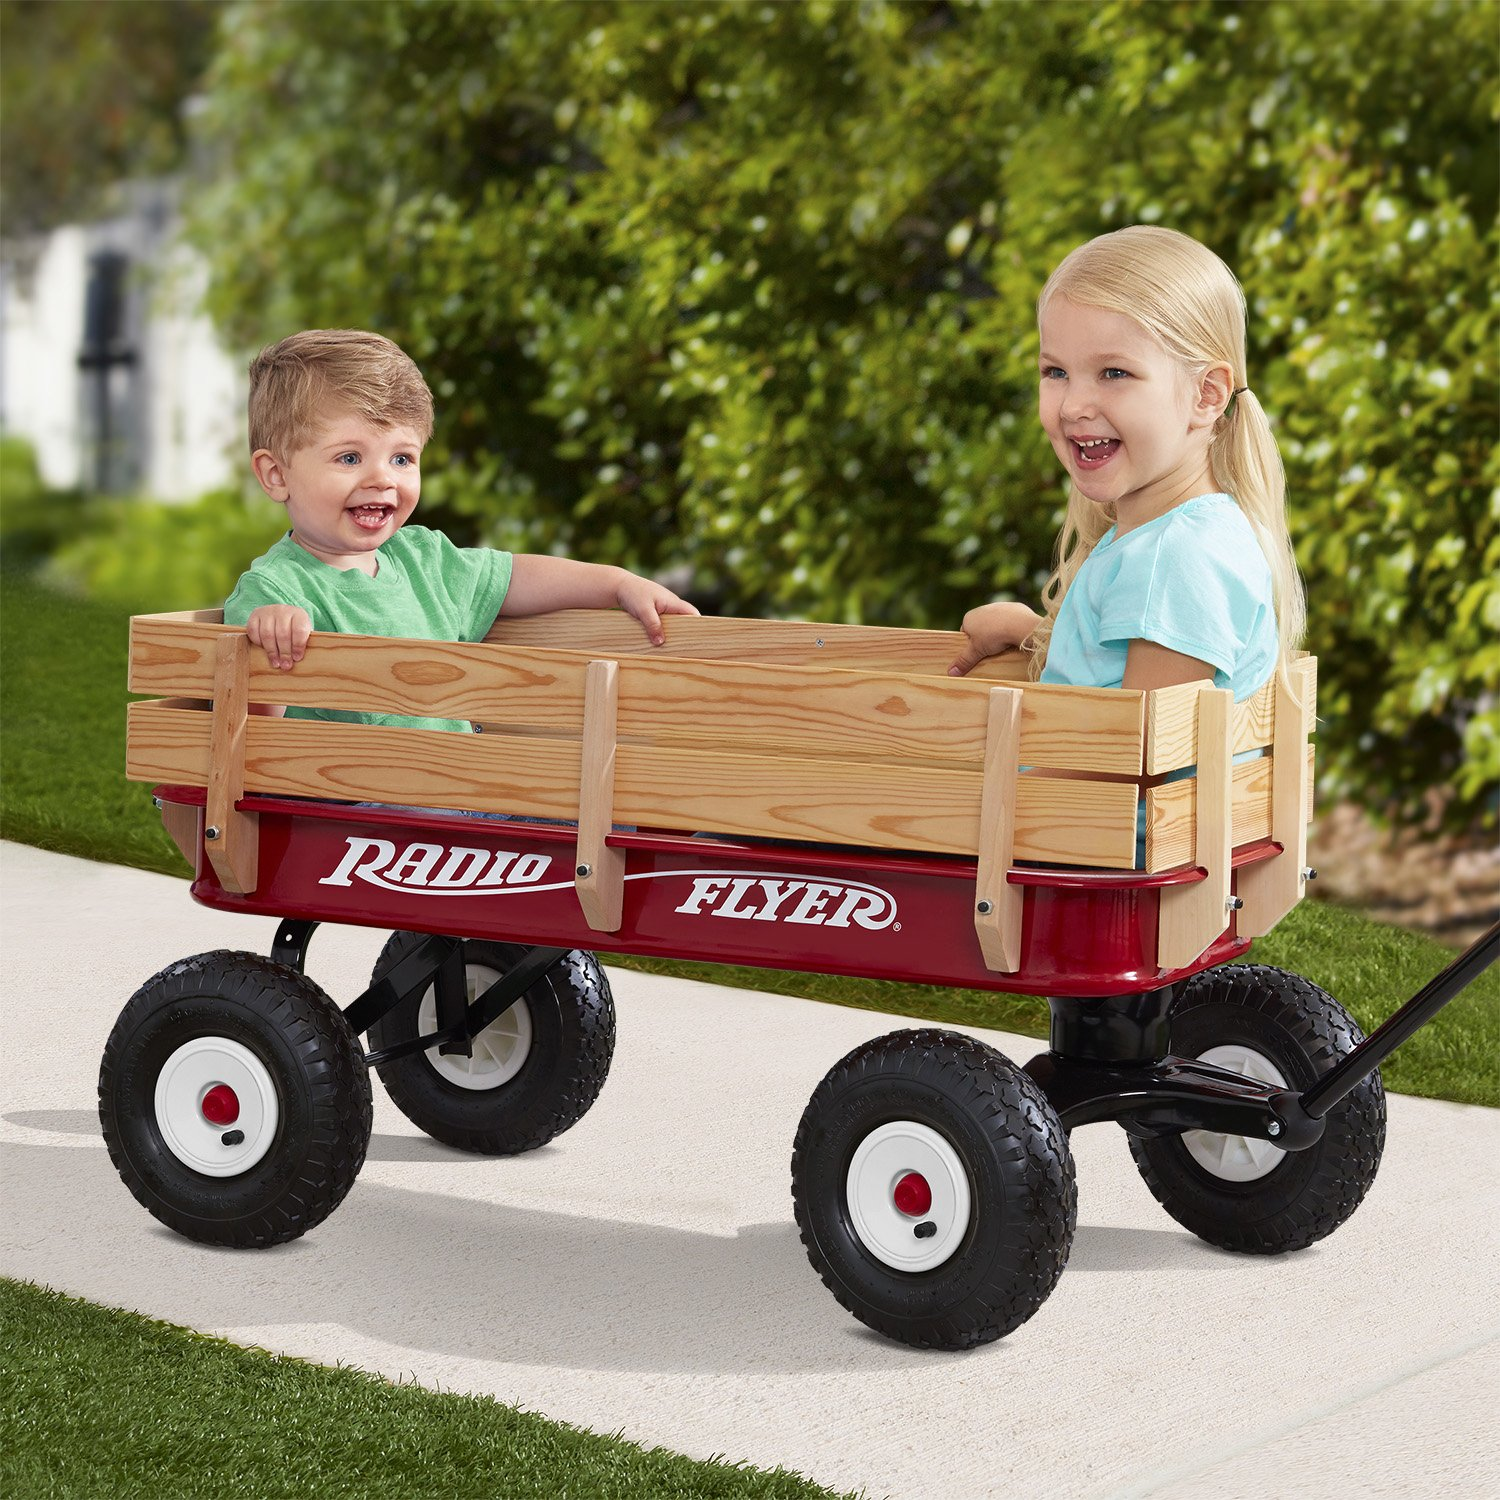 Radio Flyer Full Size All-Terrain Steel & Wood Wagon by Radio Flyer (Image #2)